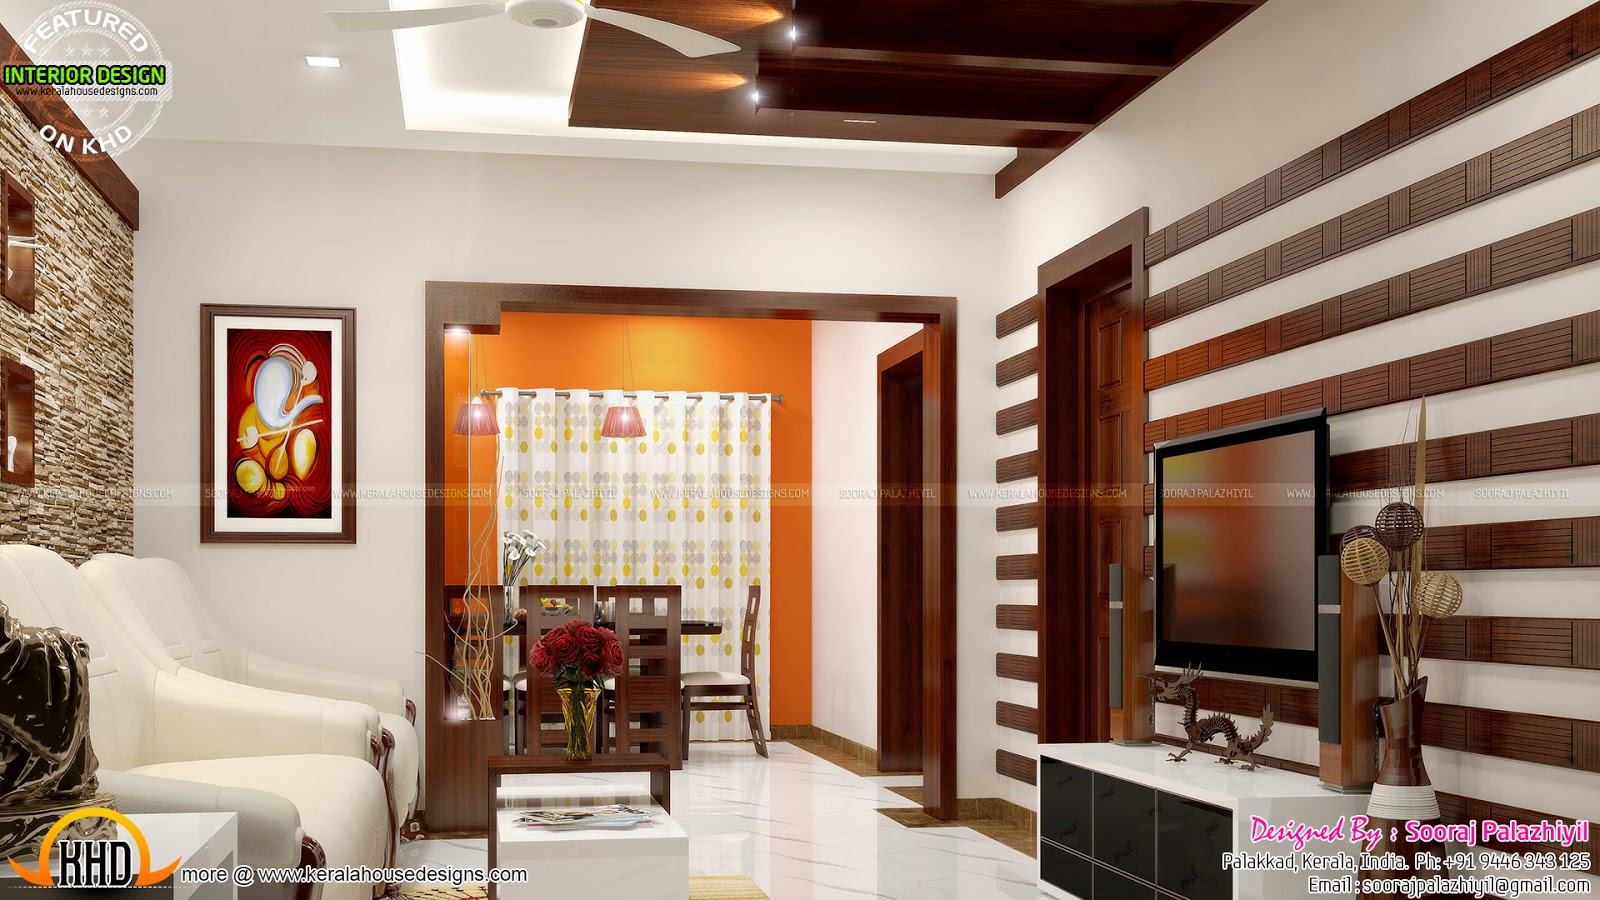 Simple apartment interior in kerala kerala home design for Small apartment interior design india